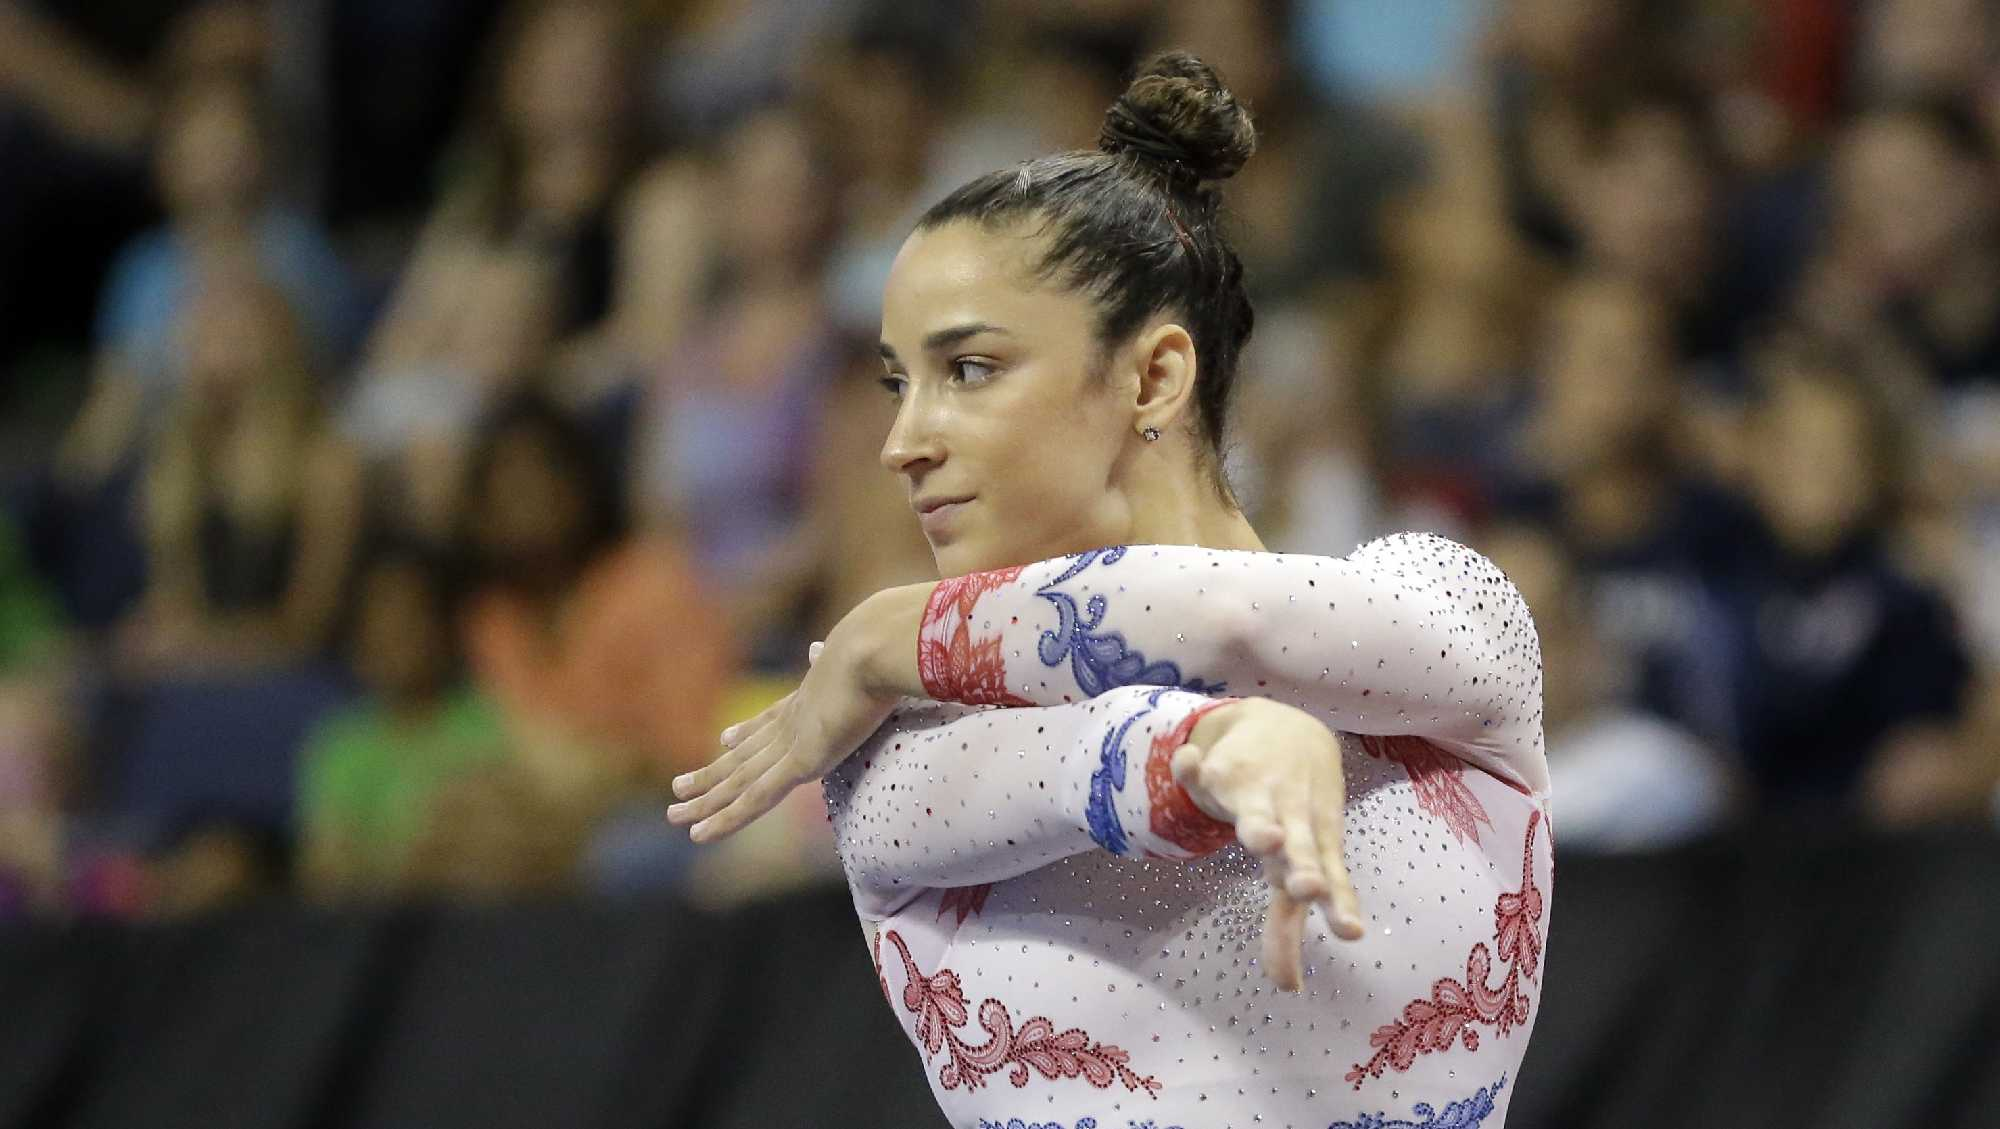 Aly RaismanHometown: NeedhamEvent: Artistic GymnasticsDate of Birth: May 25, 1994Three-time Olympic medalist with two golds and one bronze in London 2012 Olympic Games